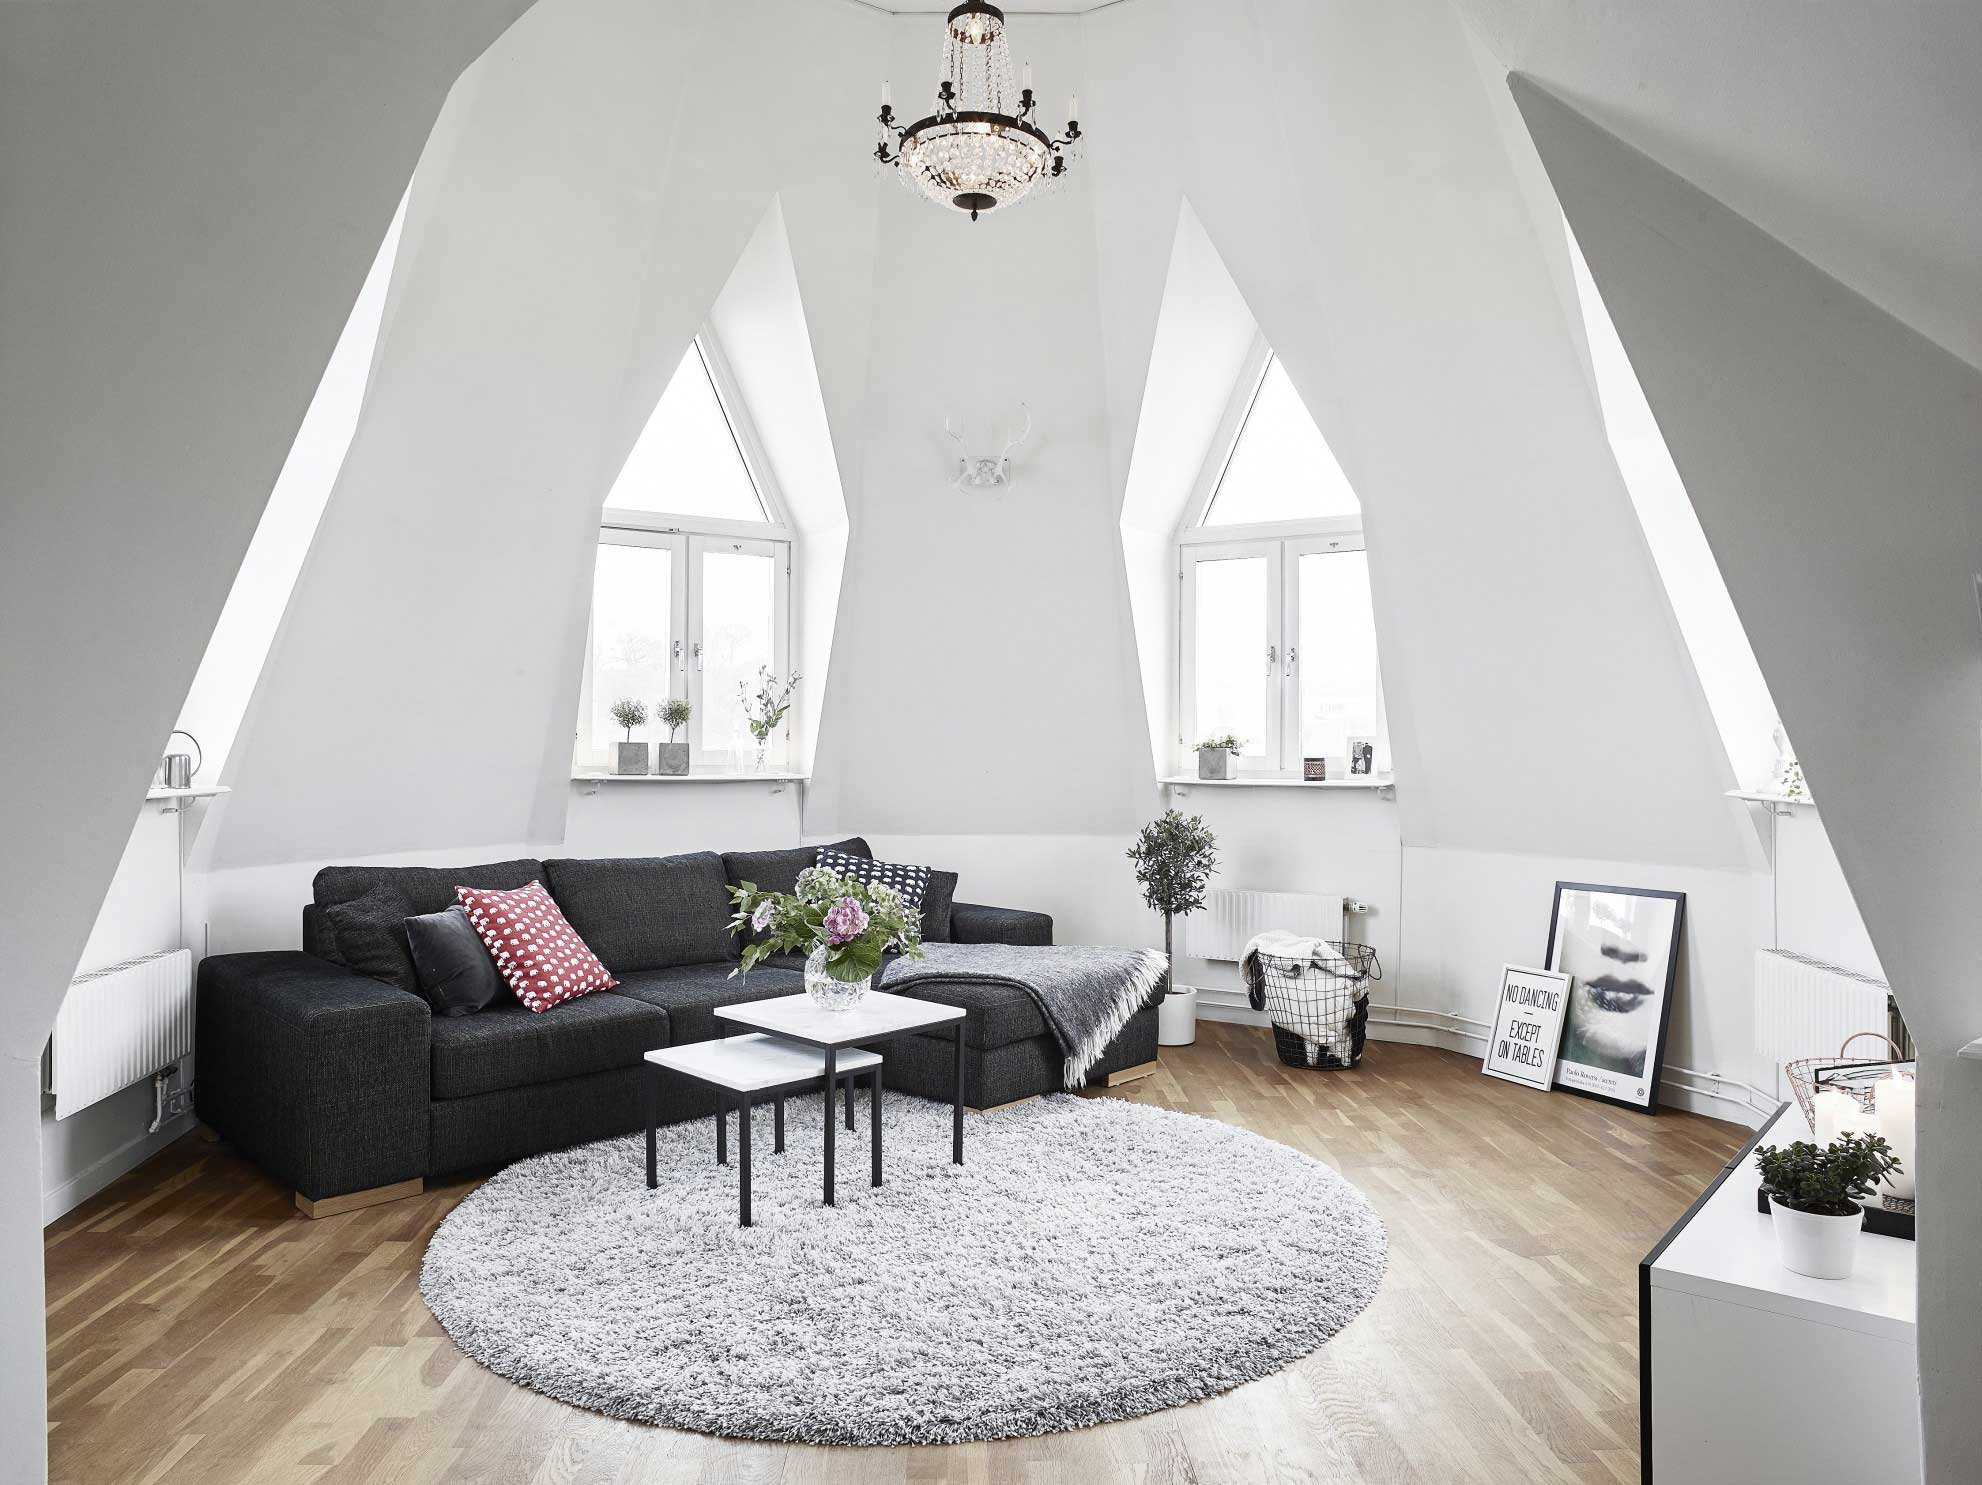 Wohnzimmer Ideen Dachgeschoss 30 Attic Living Room Ideas – Adorable Home